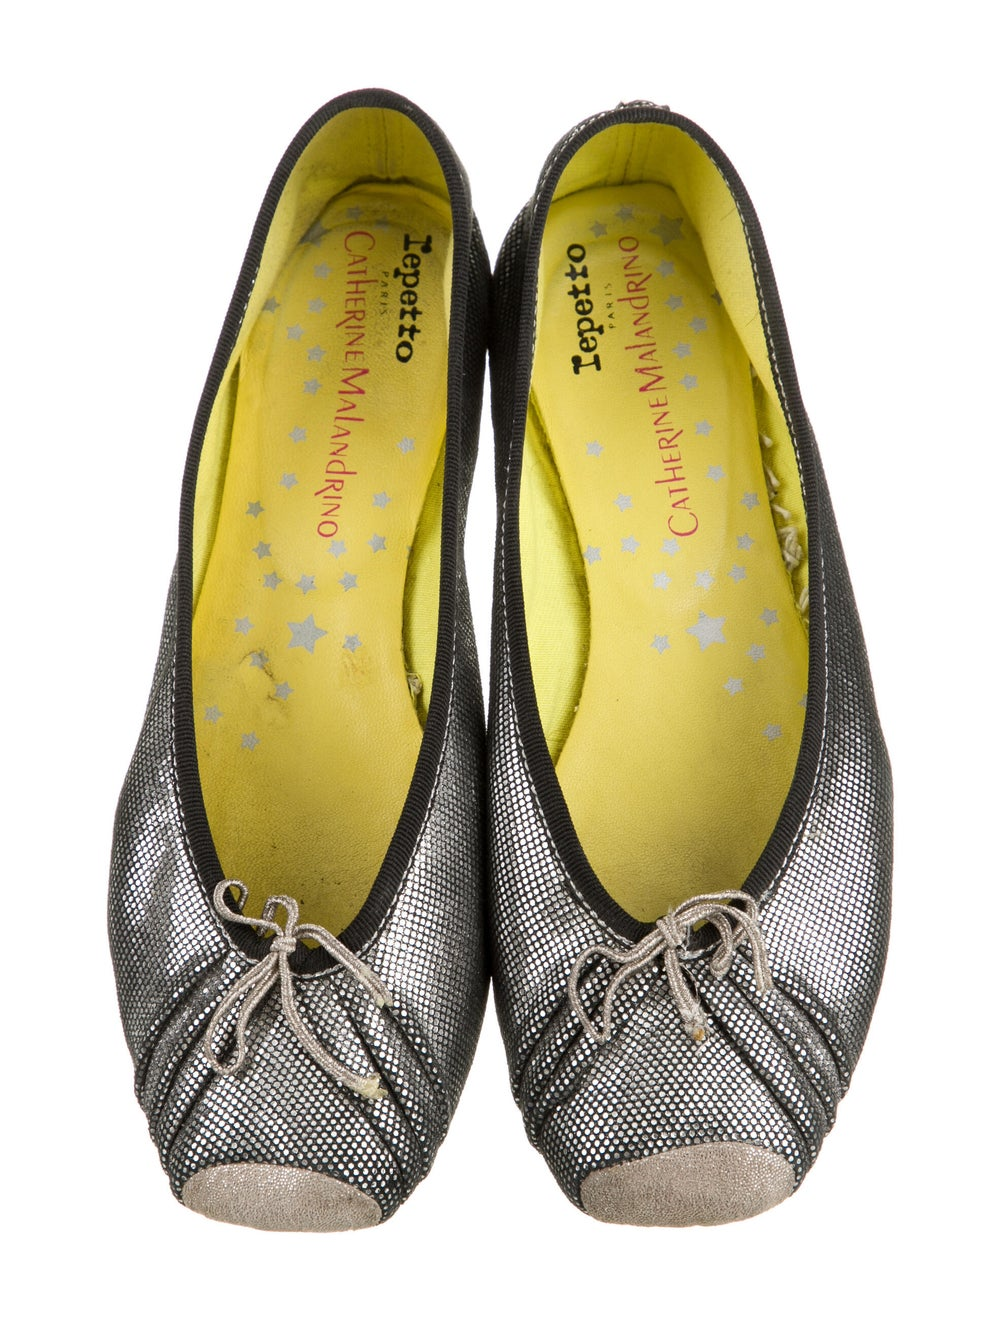 Repetto Leather Ballet Flats Metallic - image 3